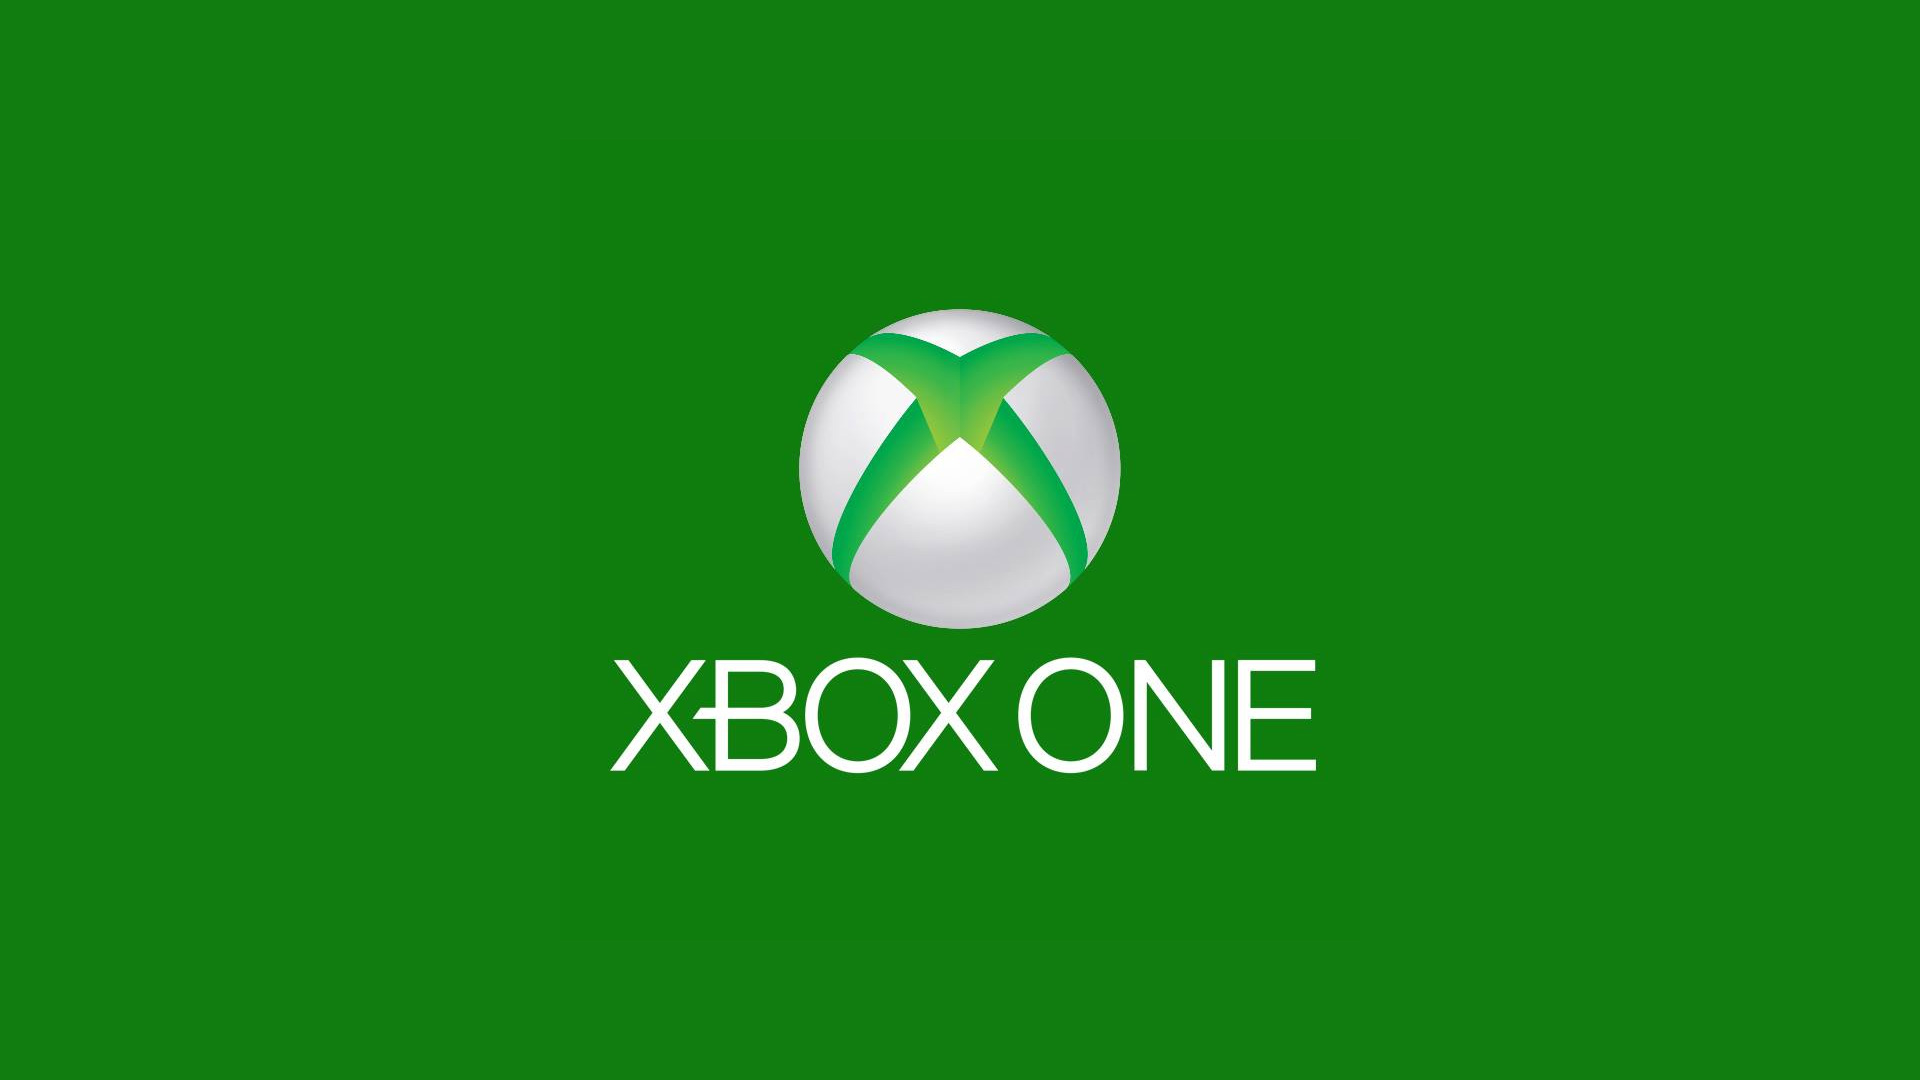 Xbox One Wallpaper